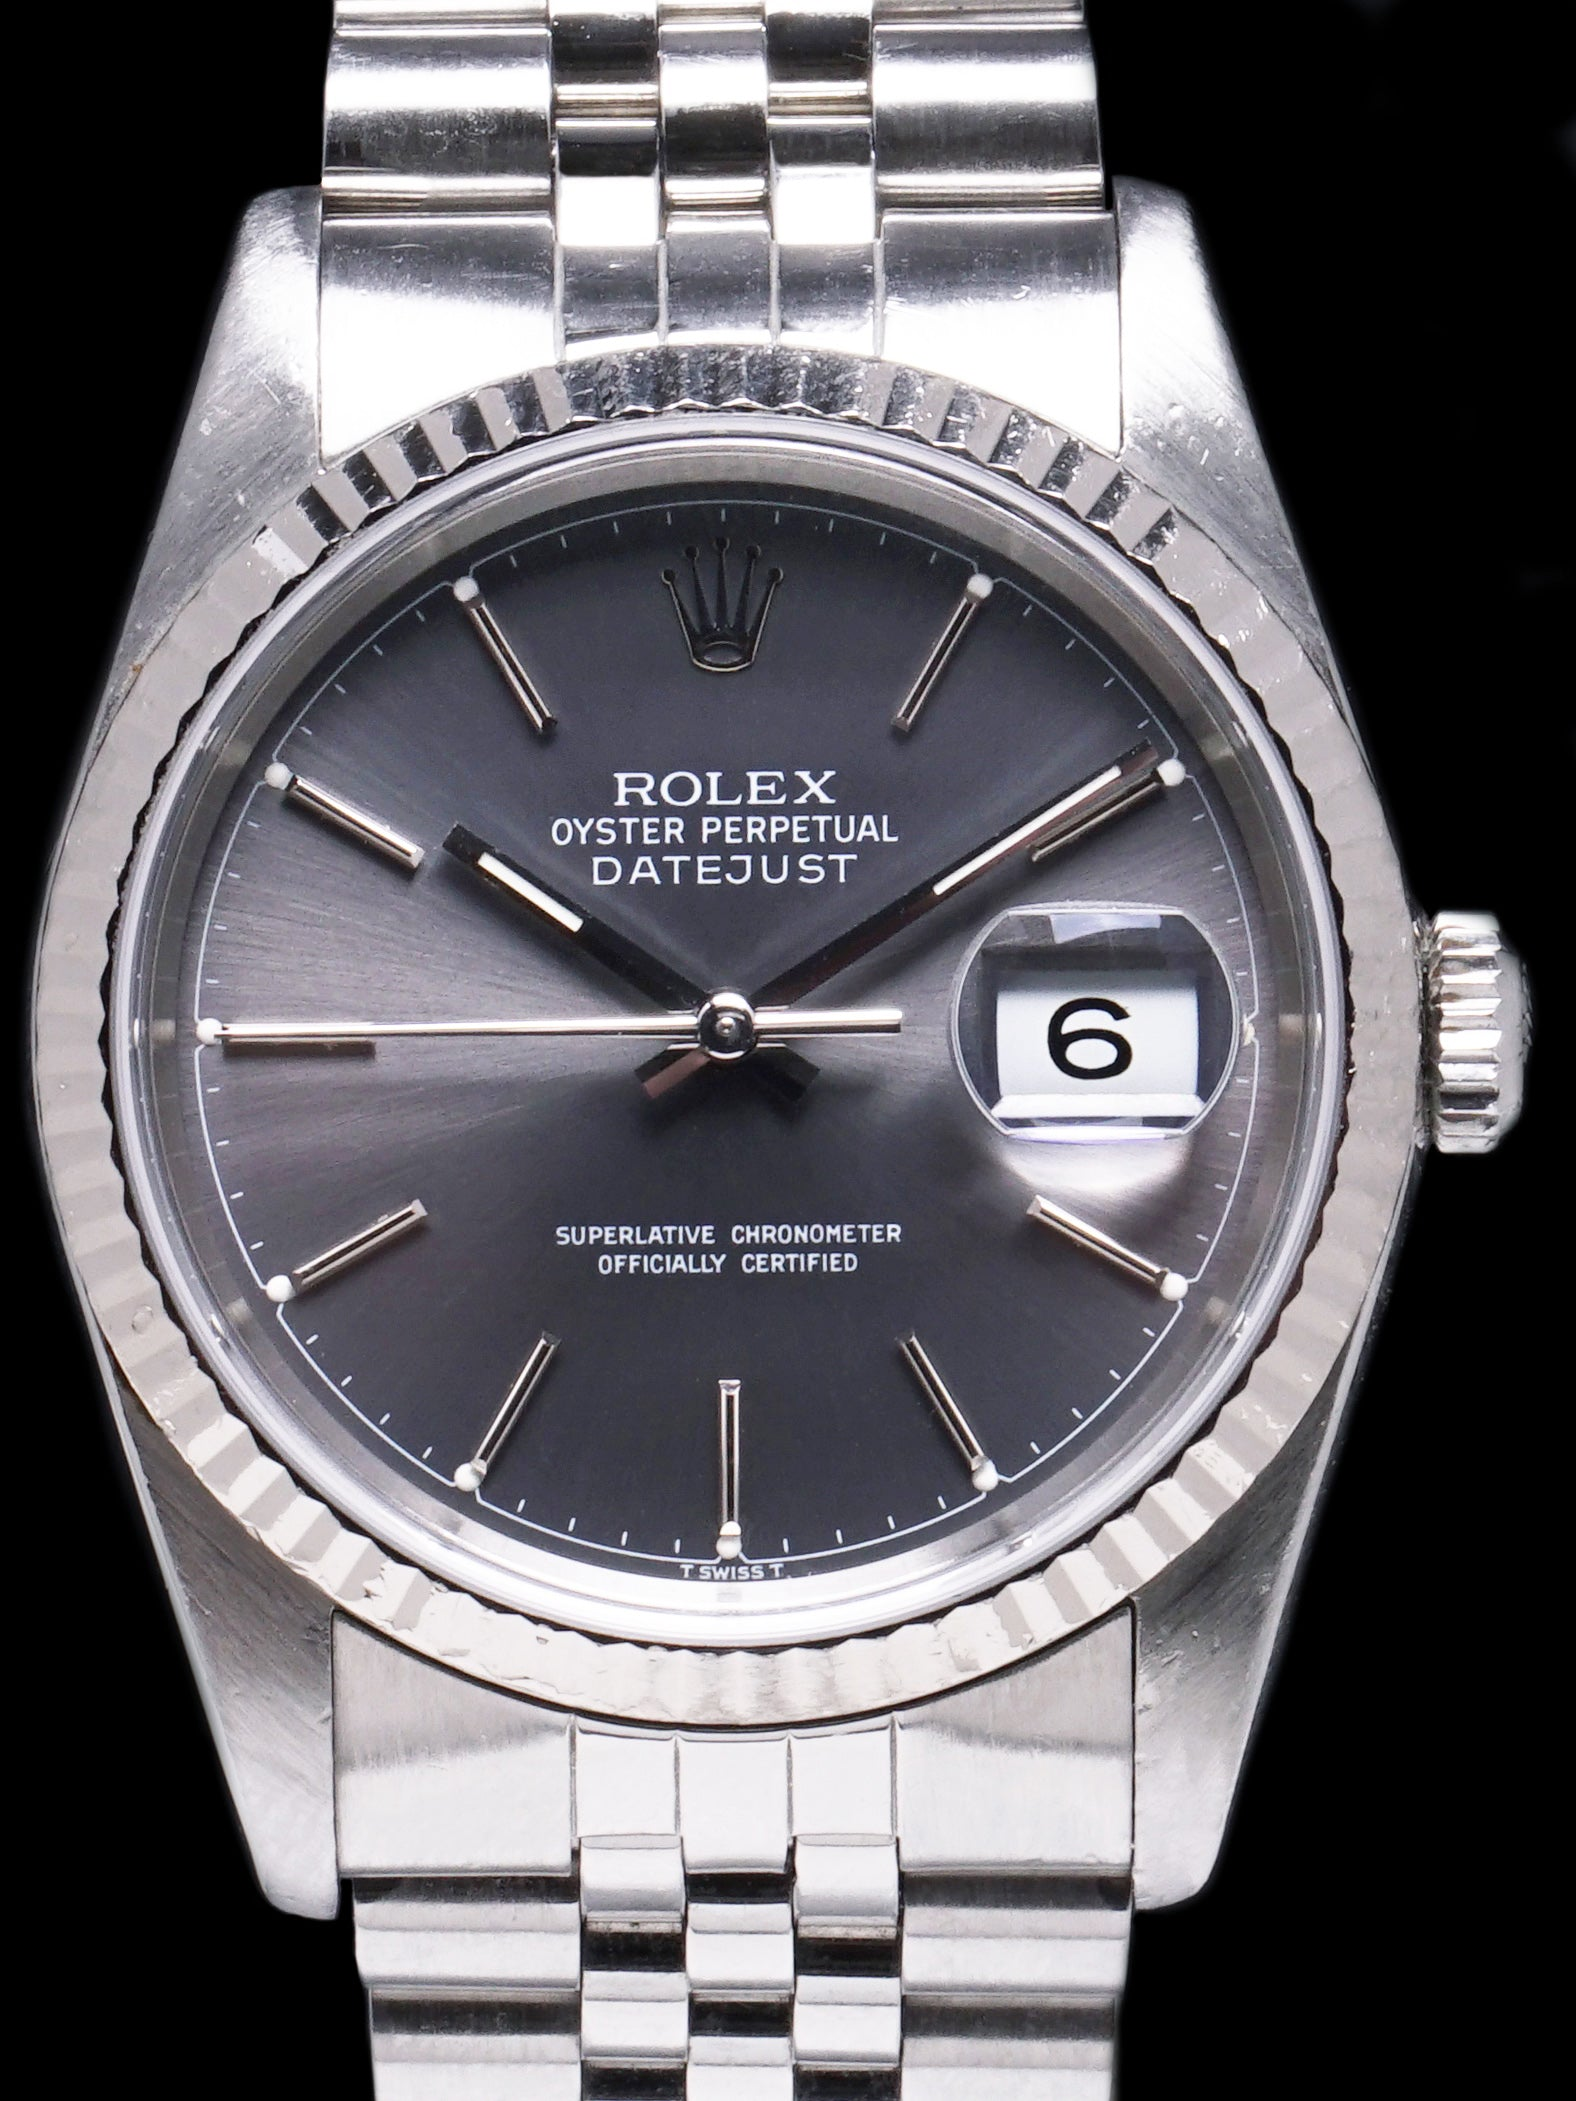 1988 Rolex Datejust (Ref. 16234) Grey Chapter Ring Dial W/ Box + Papers